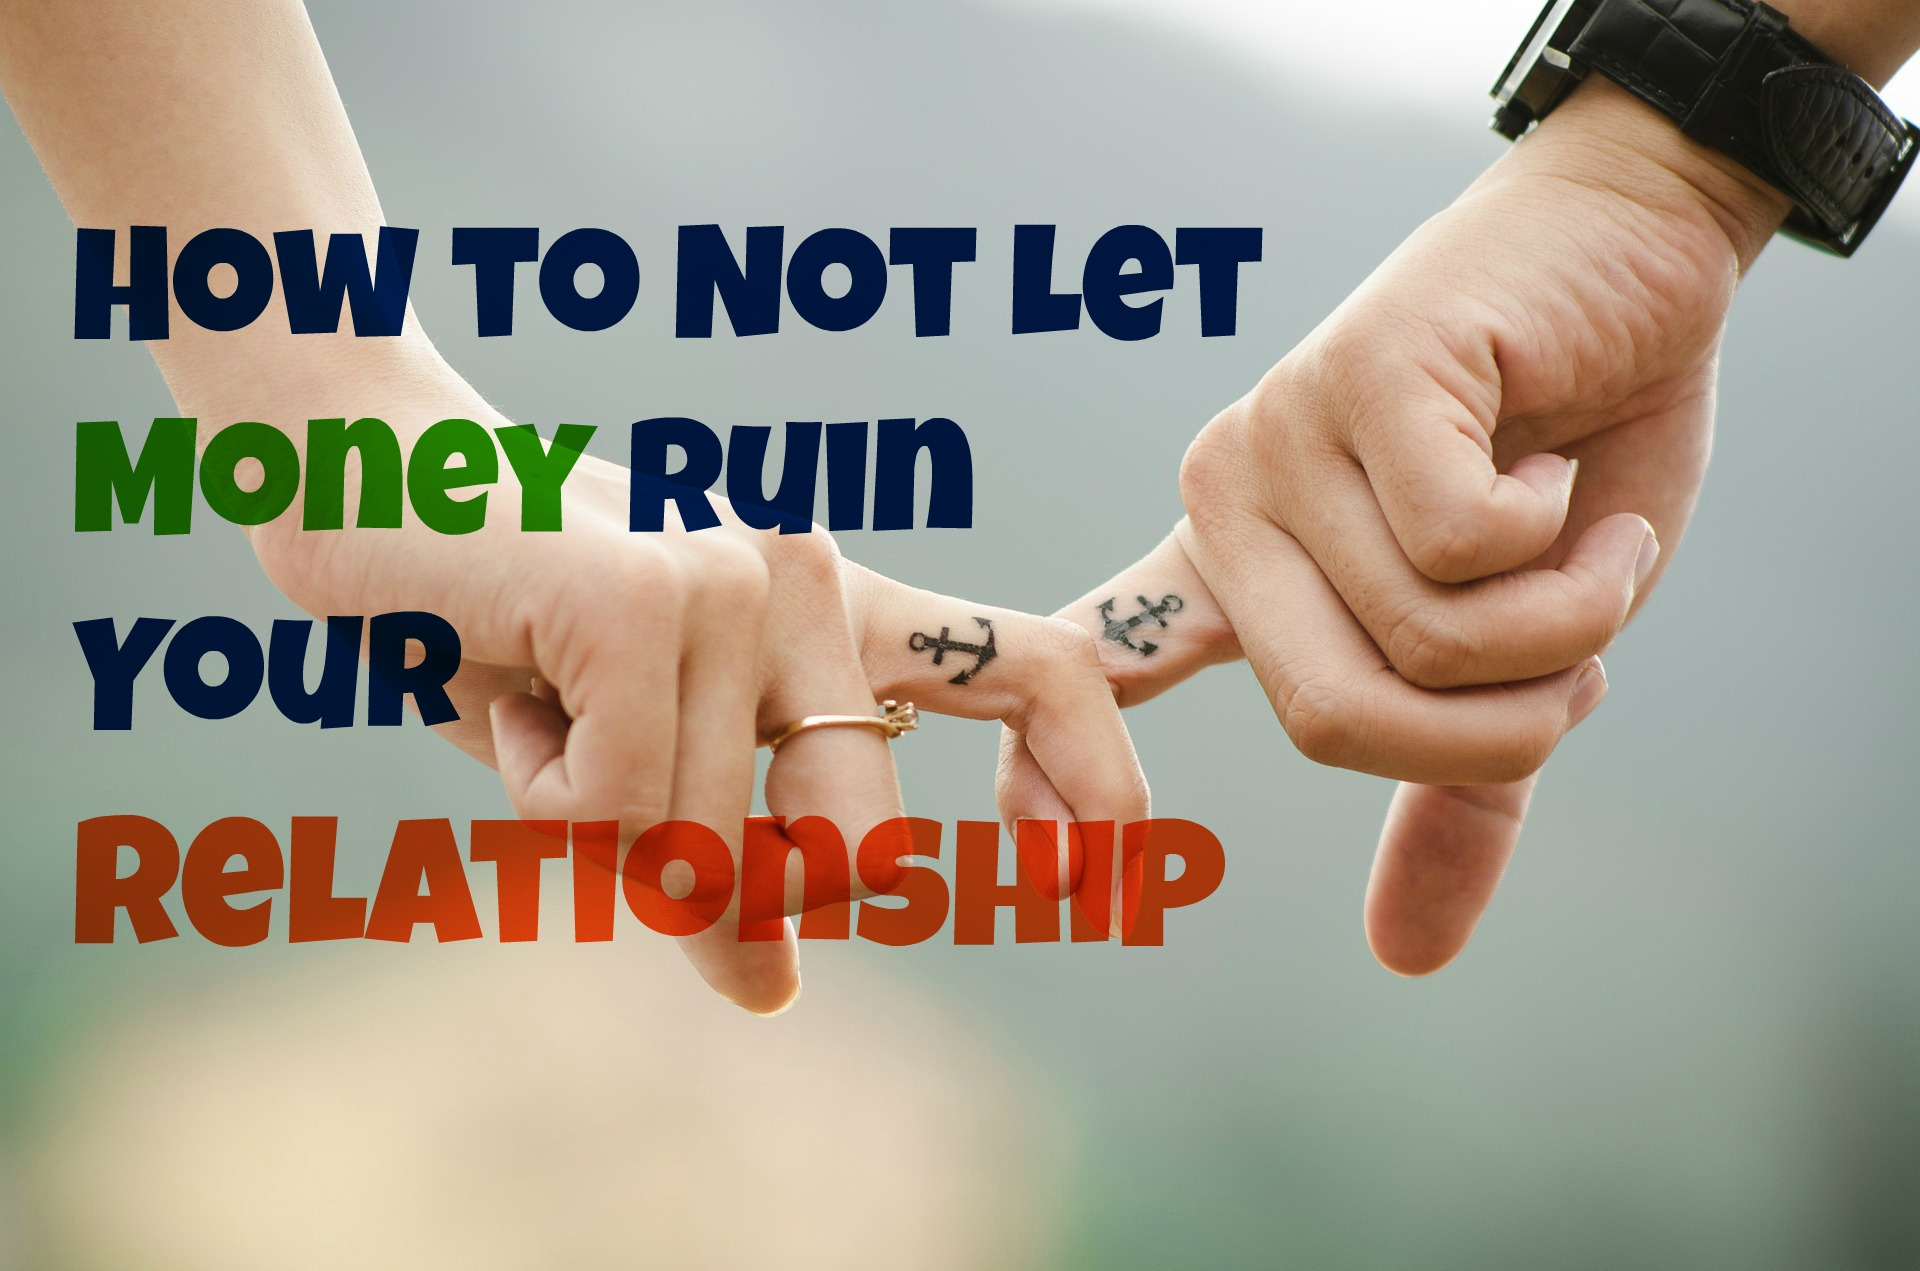 Let Money Ruin Your Relationship